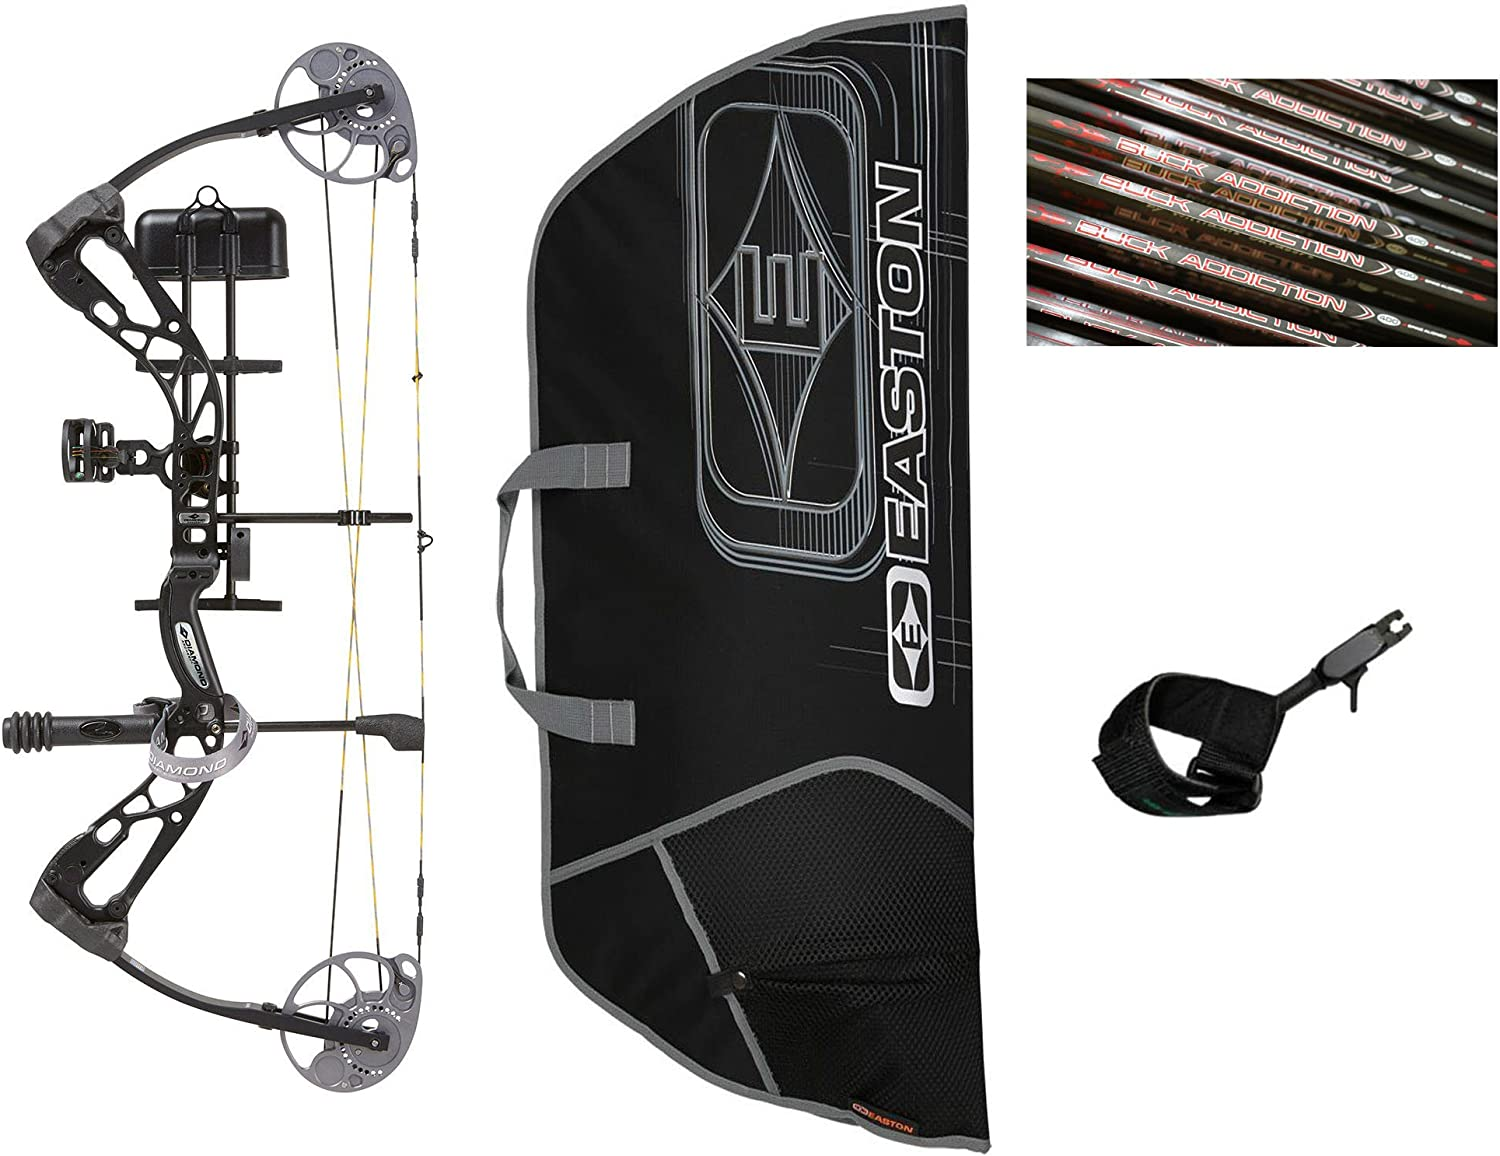 Diamond Edge SB-1, Black, Right Hand, 7-70lbs, Ready to Hunt Package